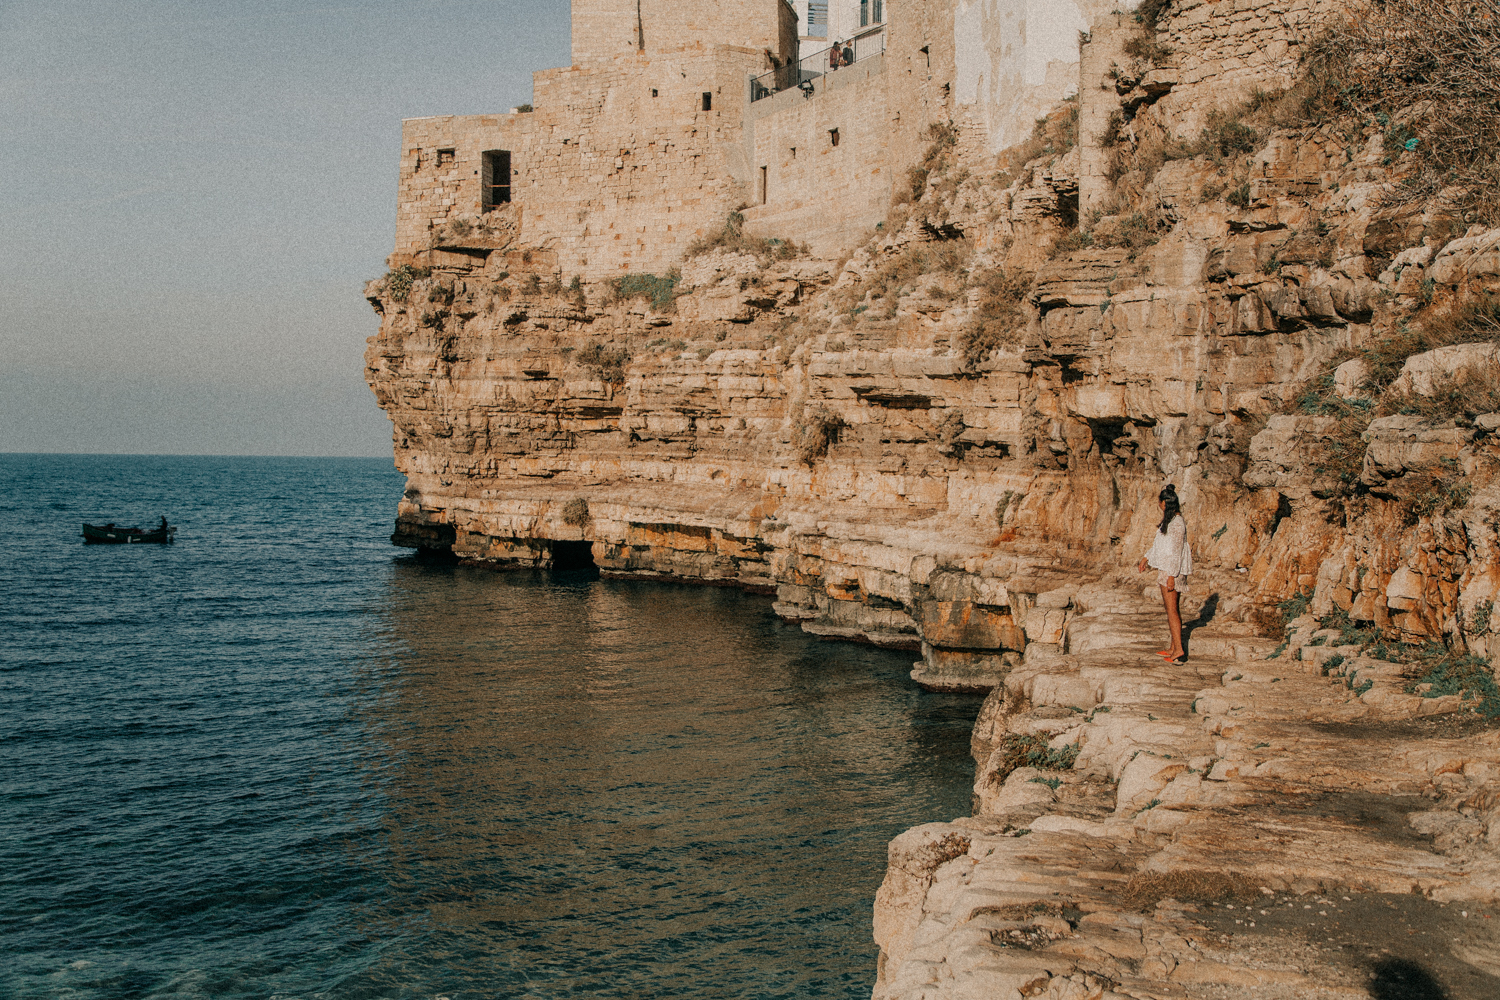 Polignano_Puglia_Italia_illumelation (13 of 19).jpg